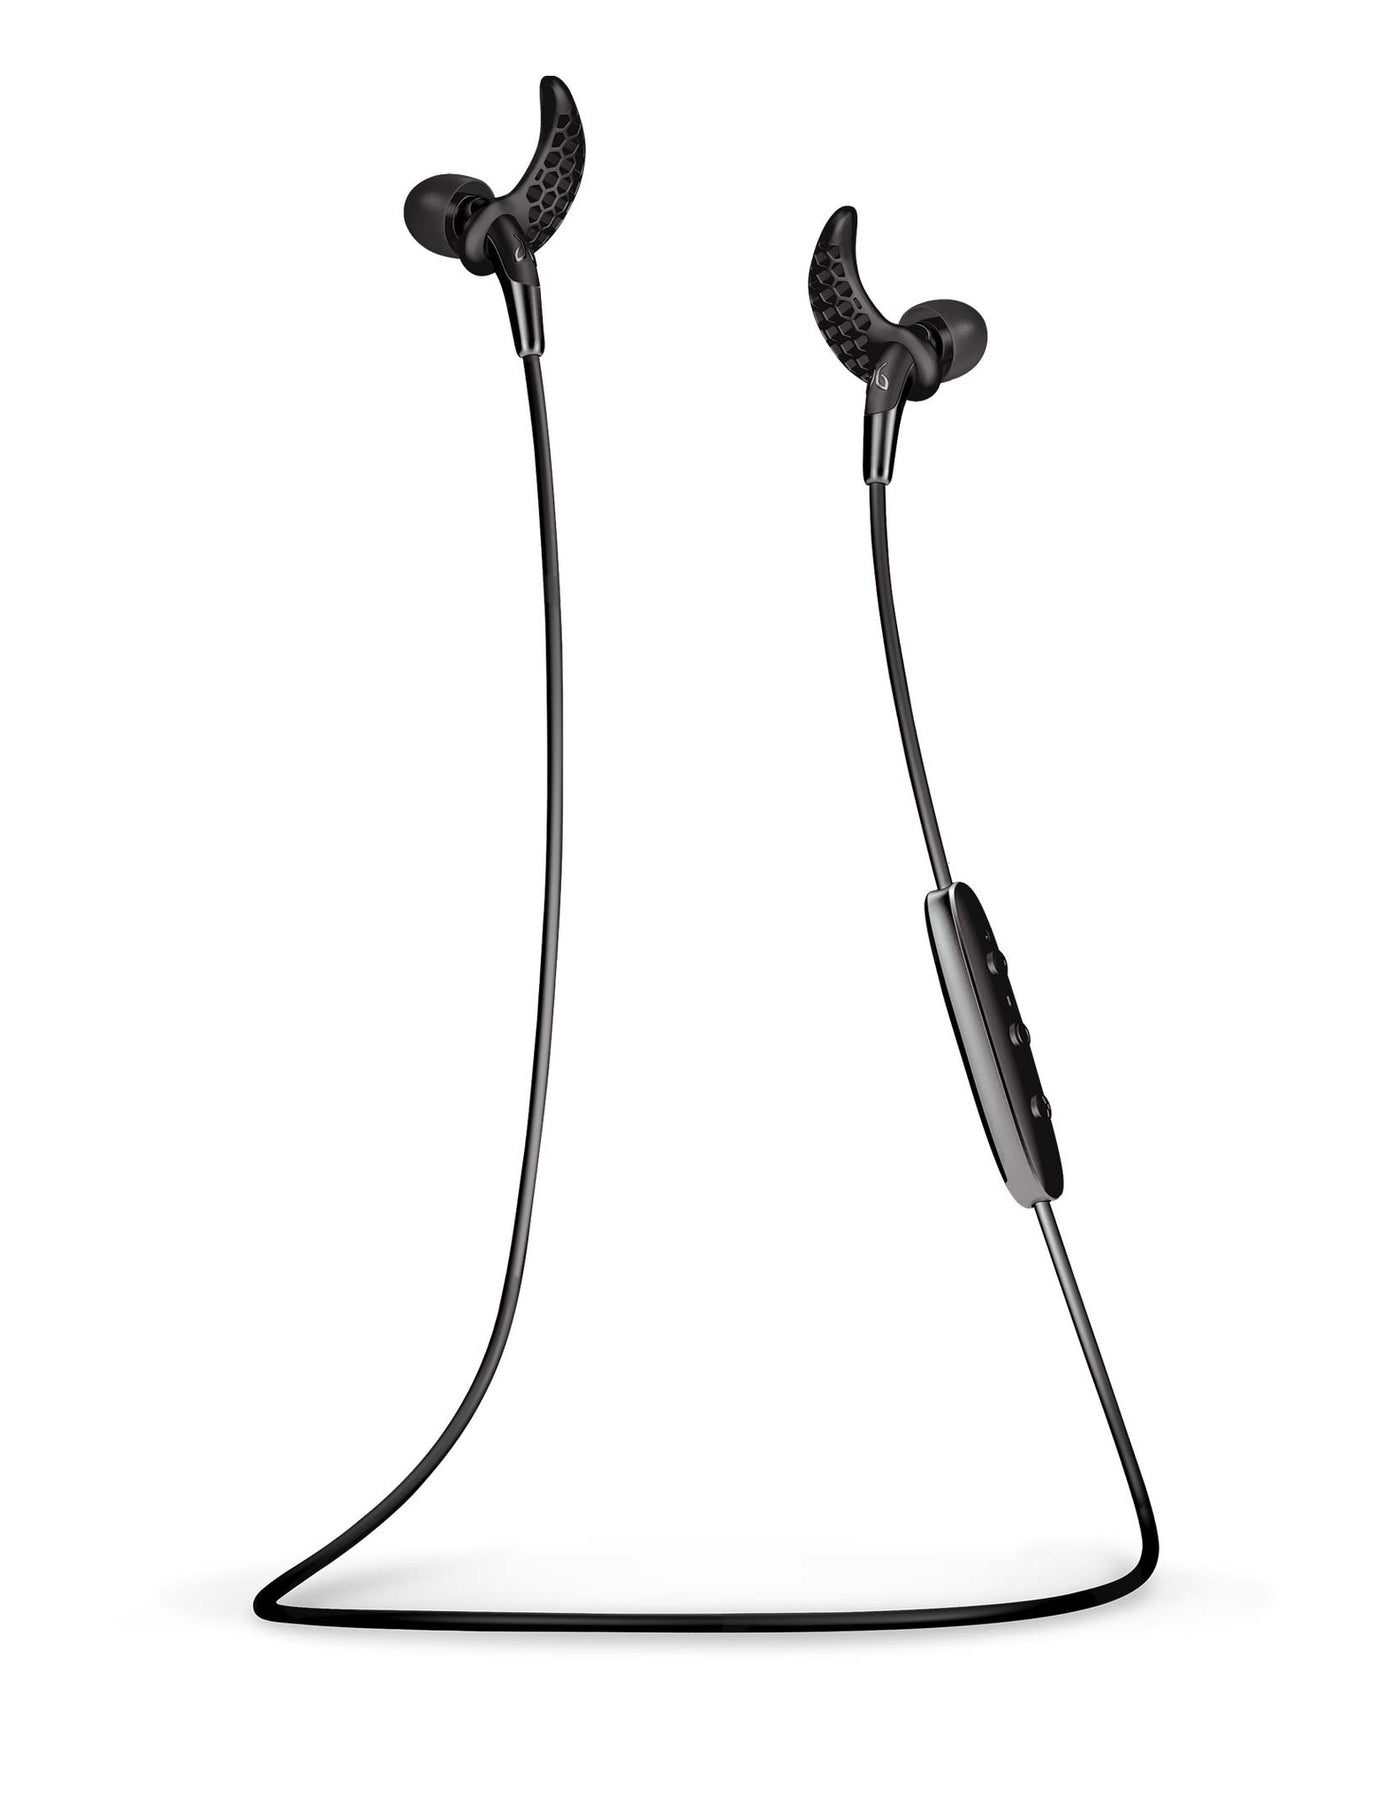 Bose SoundSport In-Ear Headphones for Apple Devices